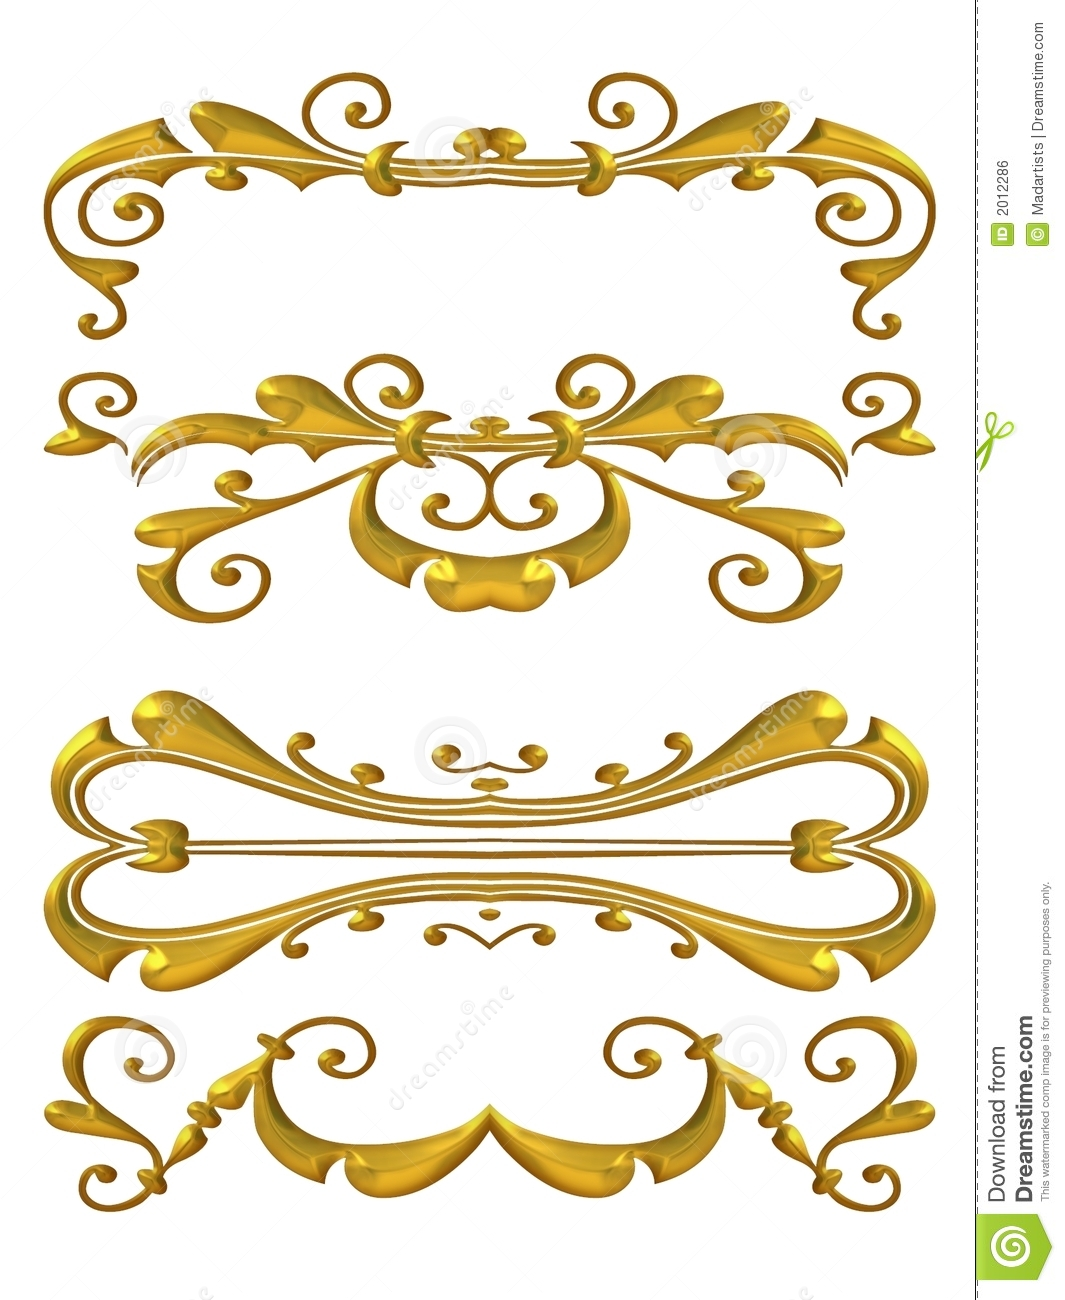 Gold Shiny Flourish Designs Royalty Free Stock Image - Image: 2012286